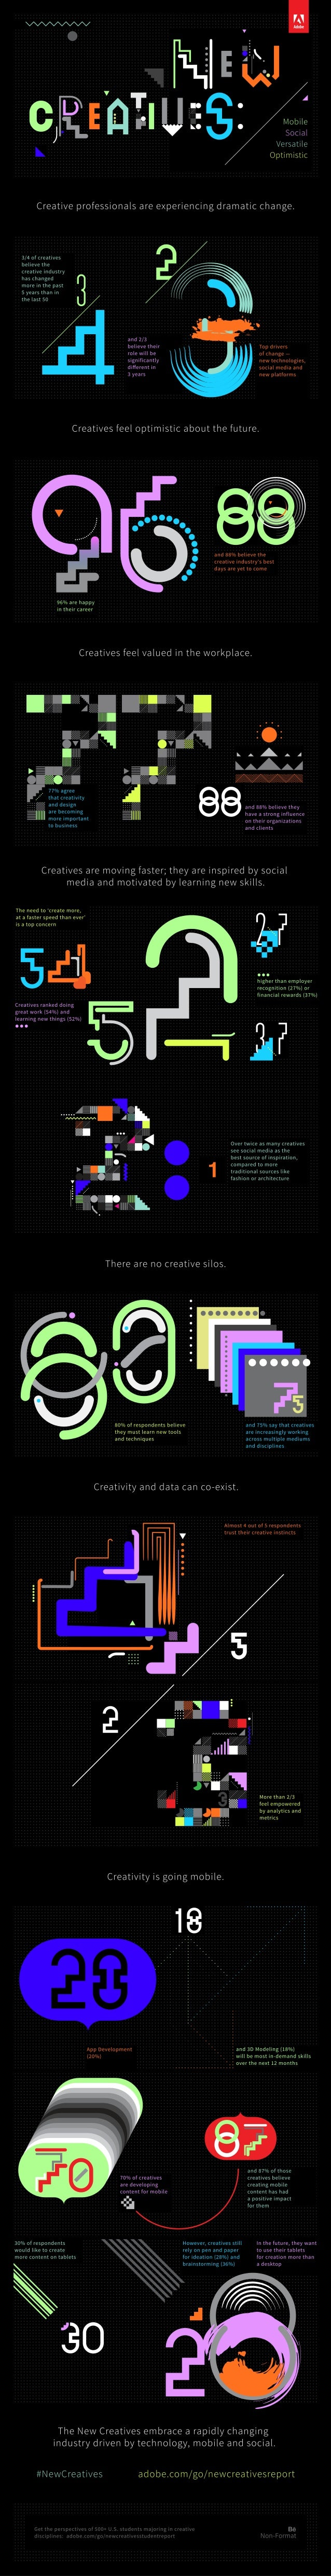 The New Creatives - June 2014 Infographic